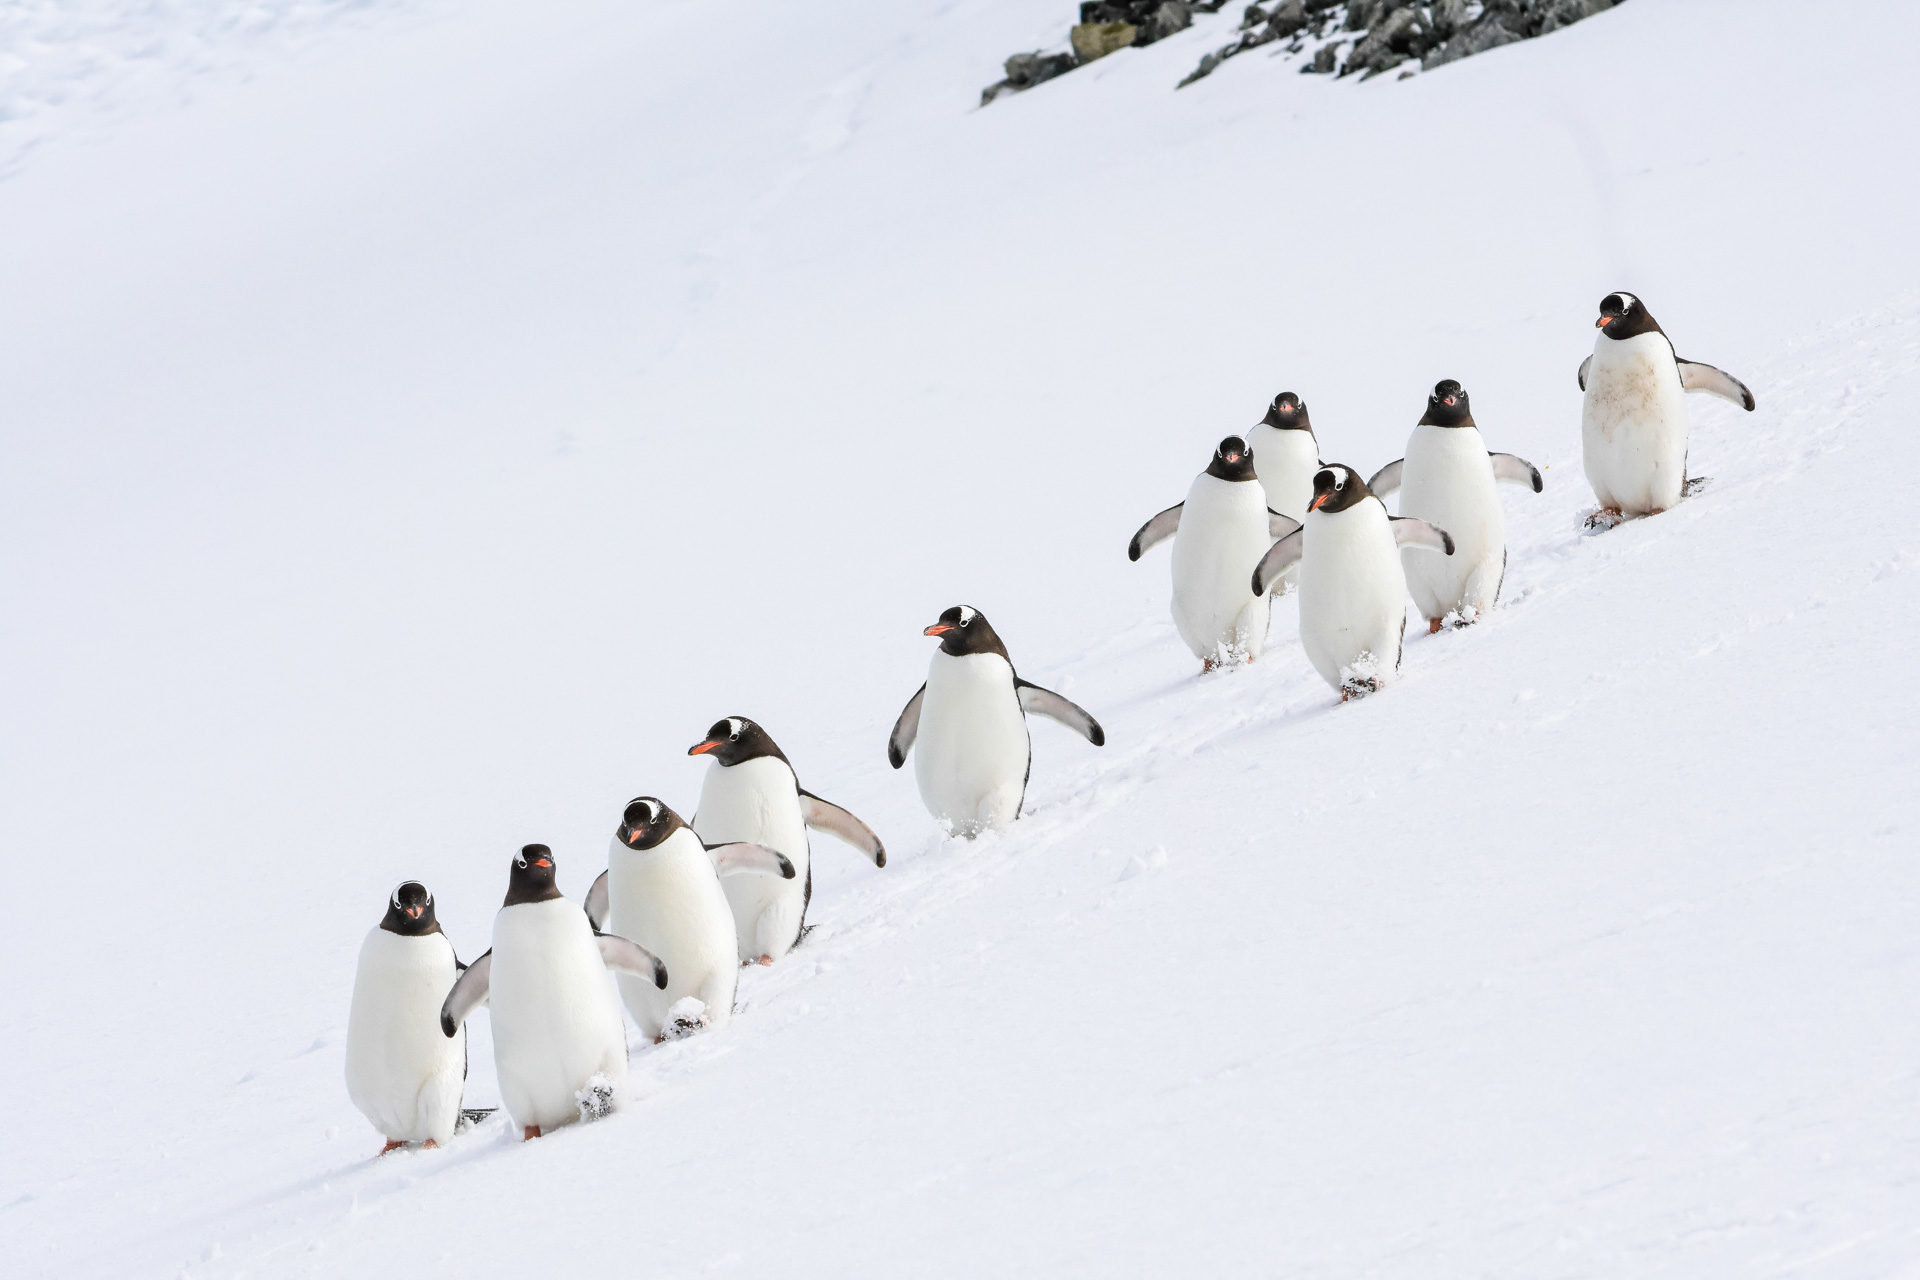 A group of Gentoo penguins in Antarctica. Photography by Philip Stone.